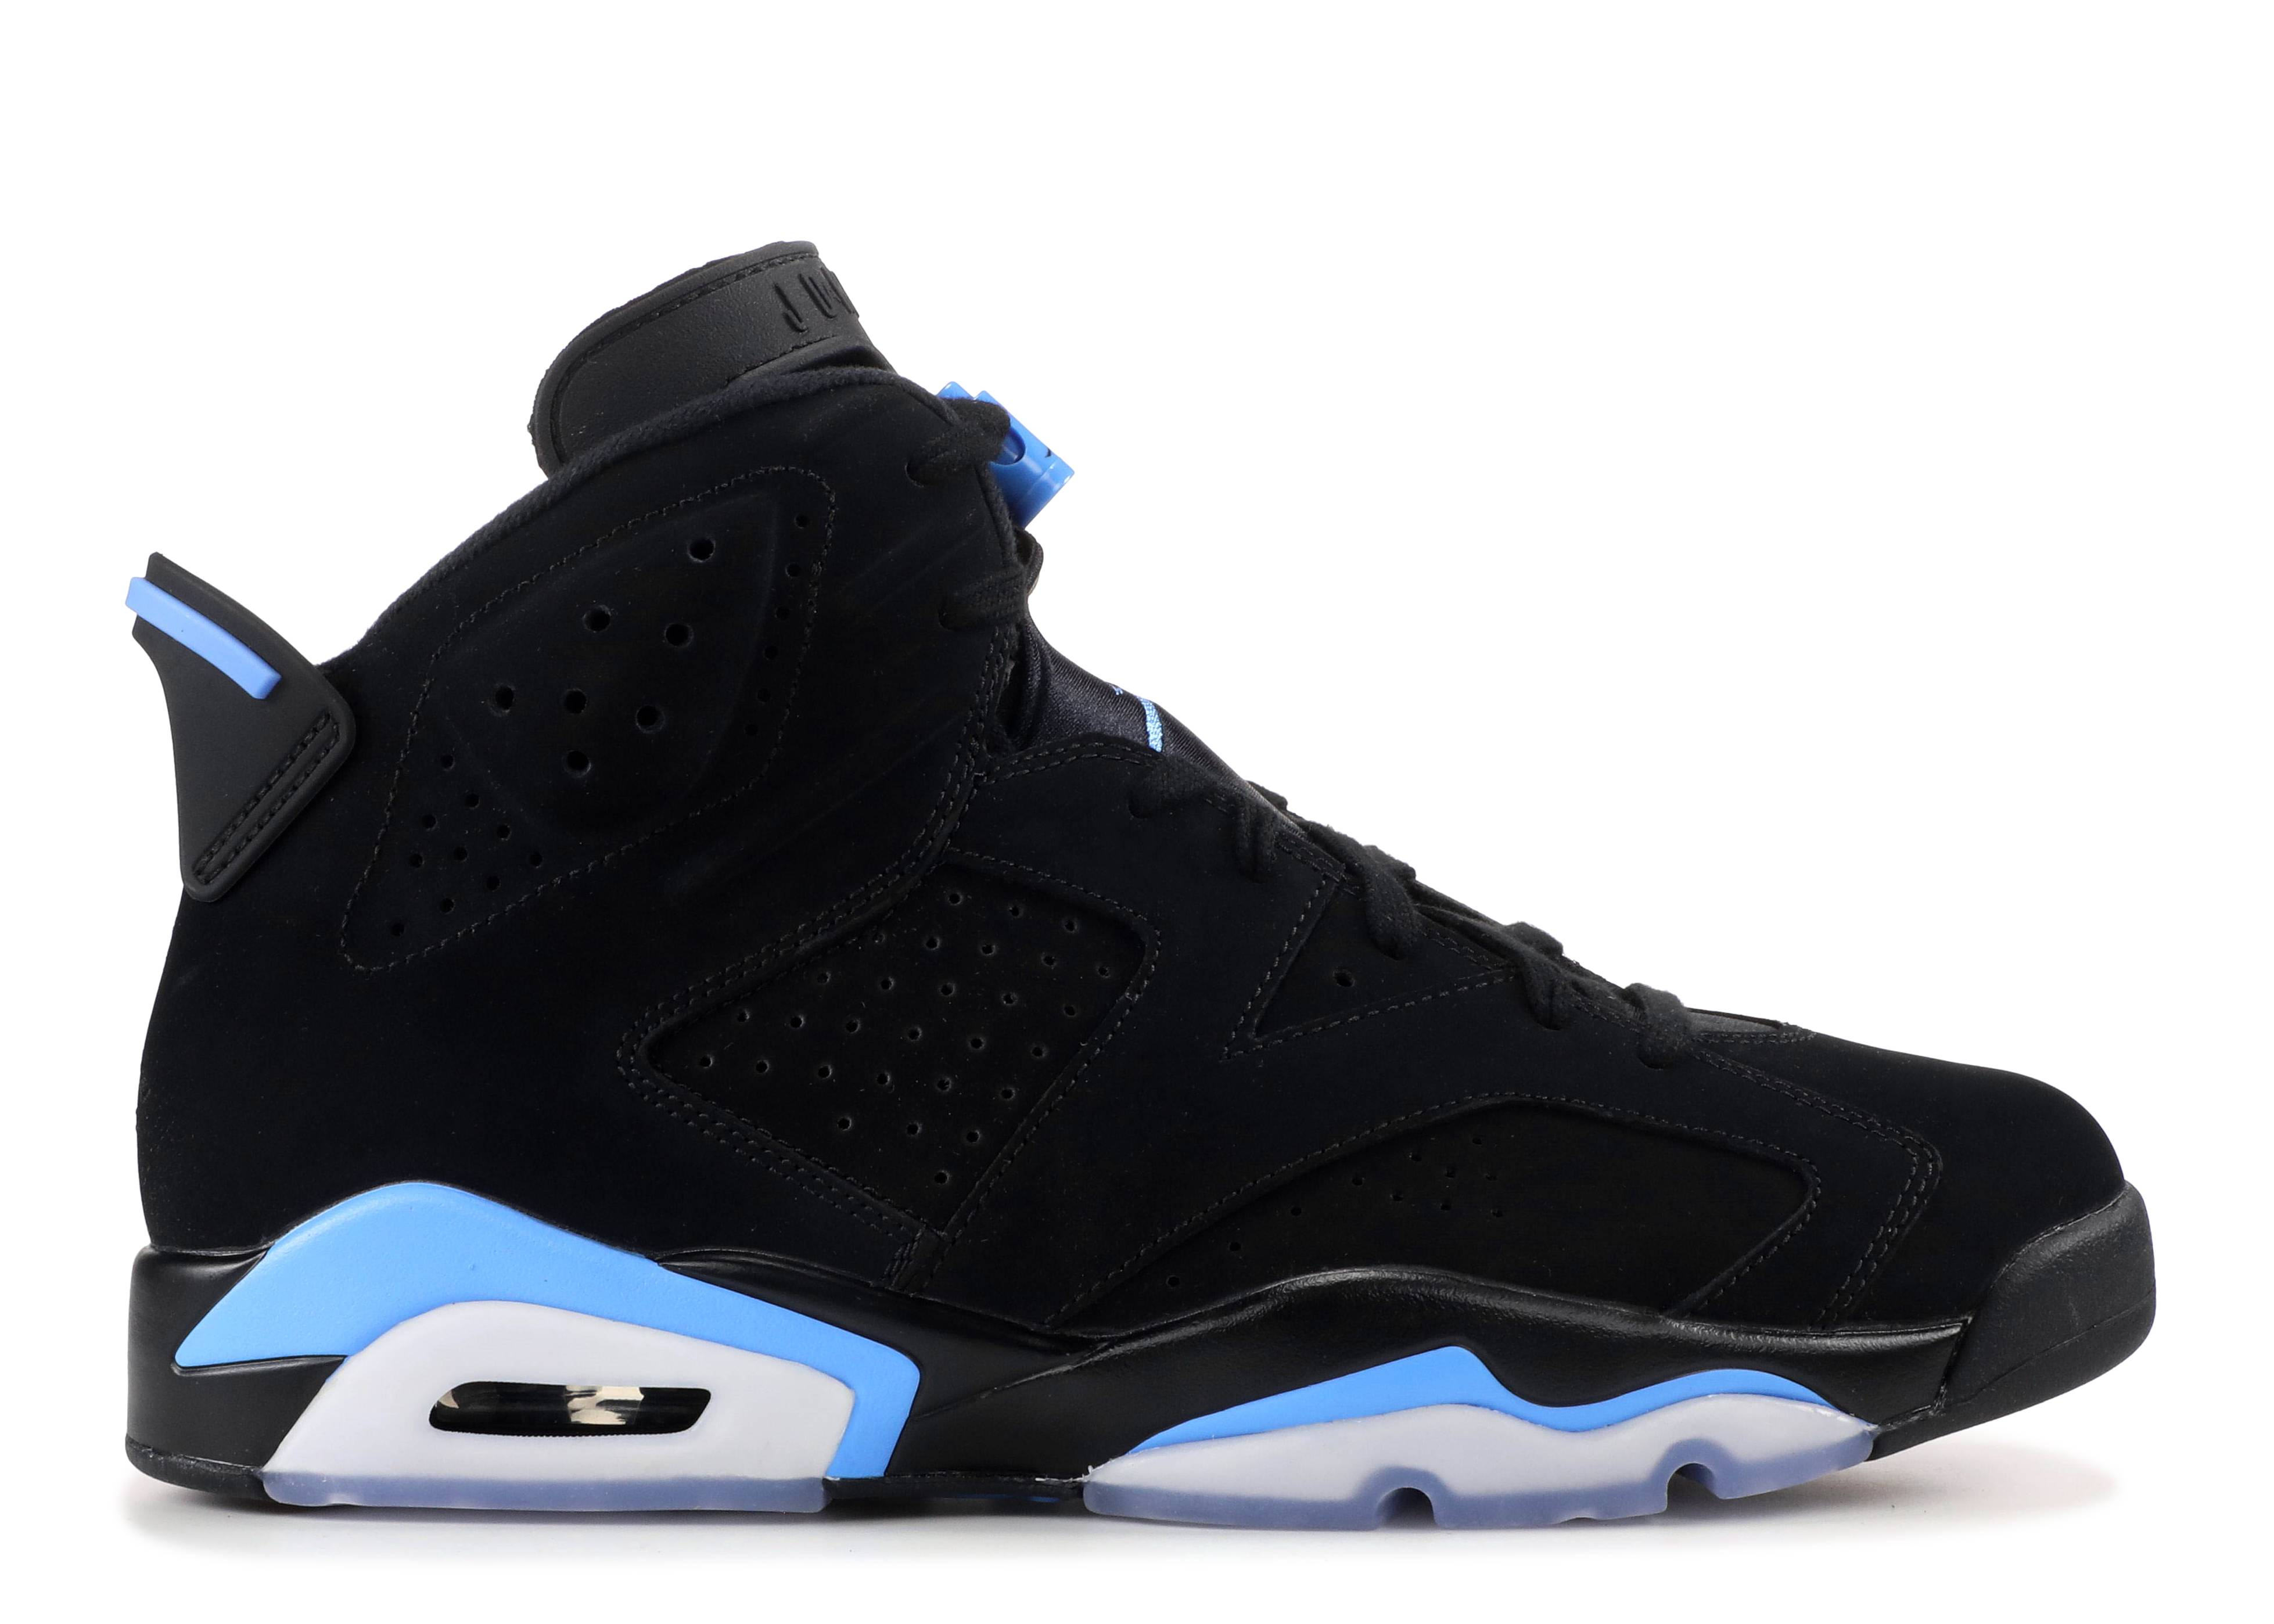 retro 6 jordans men nz